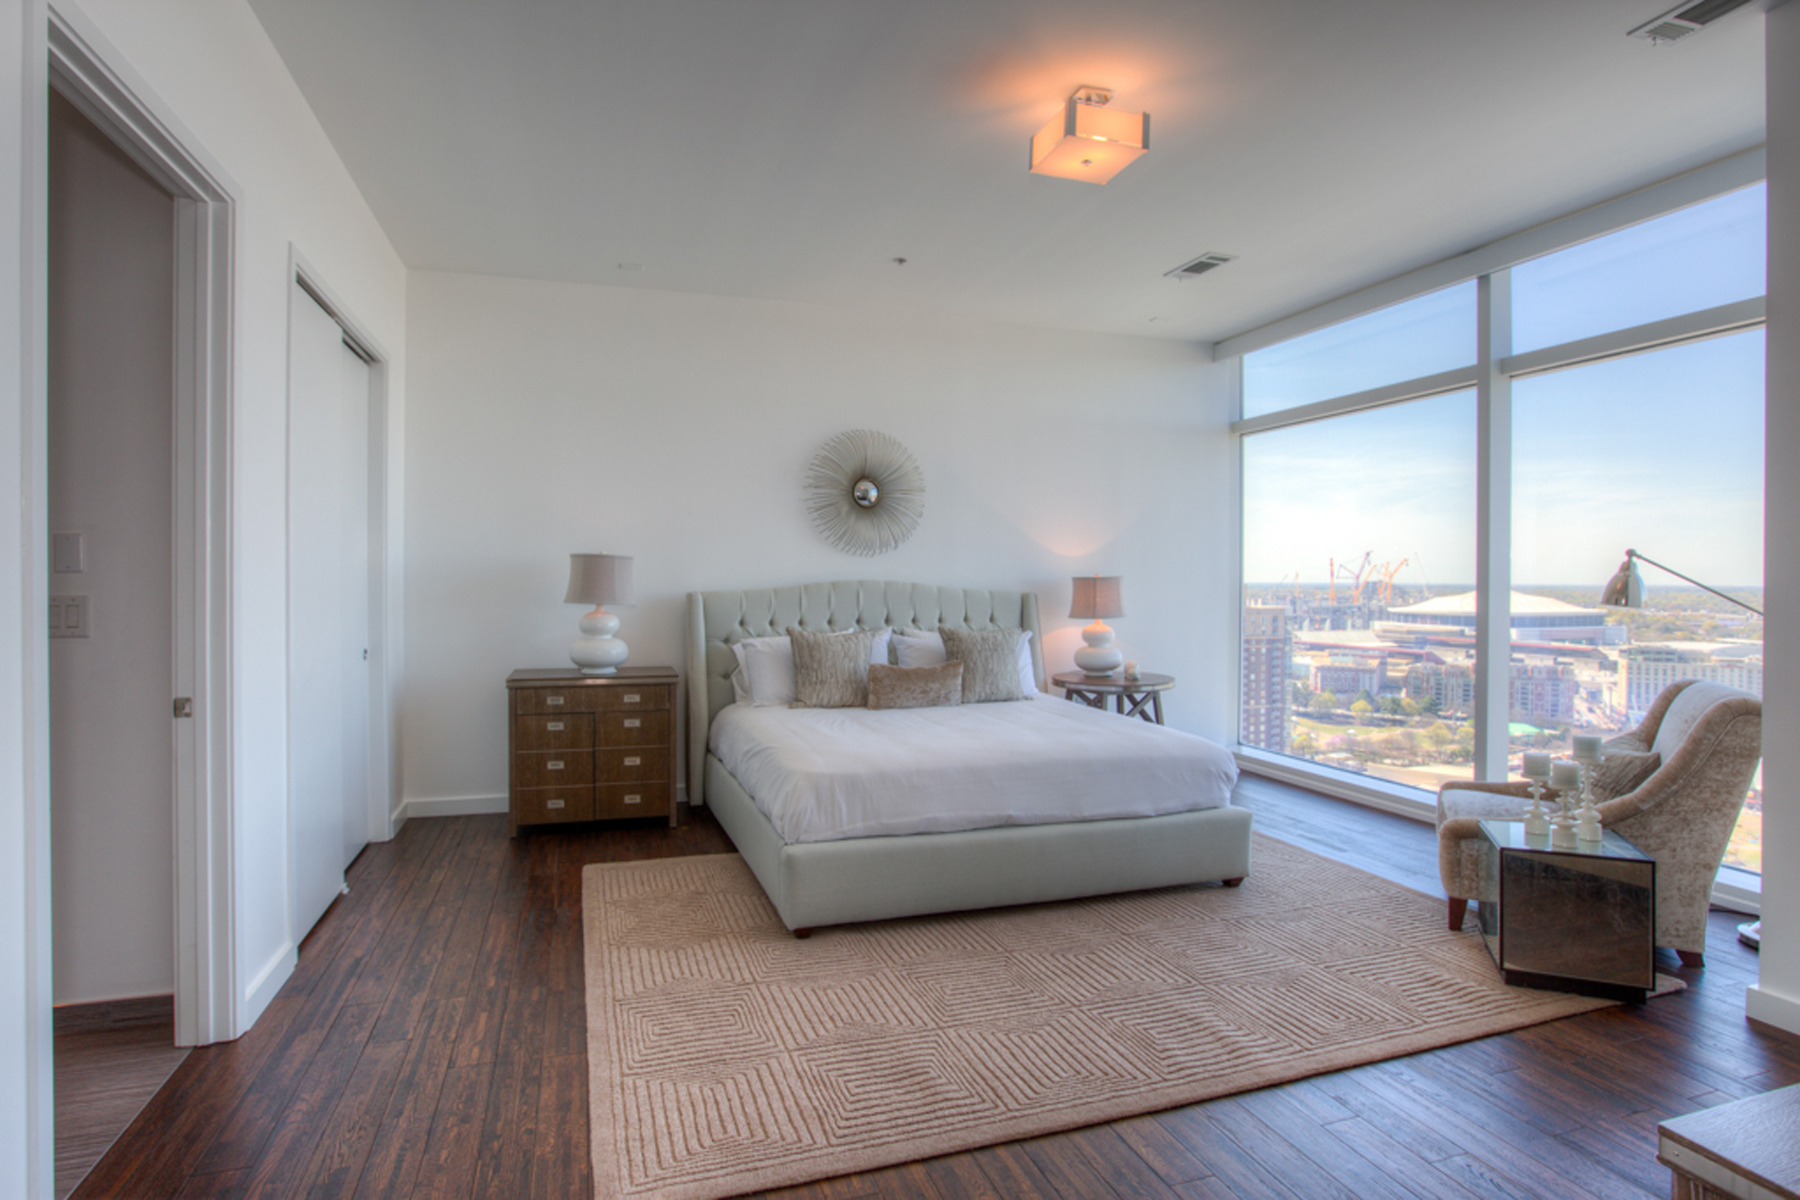 Additional photo for property listing at Spectacular Two Level Atlanta Penthouse With Luxury Hotel Amenities 45 Ivan Allen Jr Boulevard PH#2703 Atlanta, Geórgia 30308 Estados Unidos